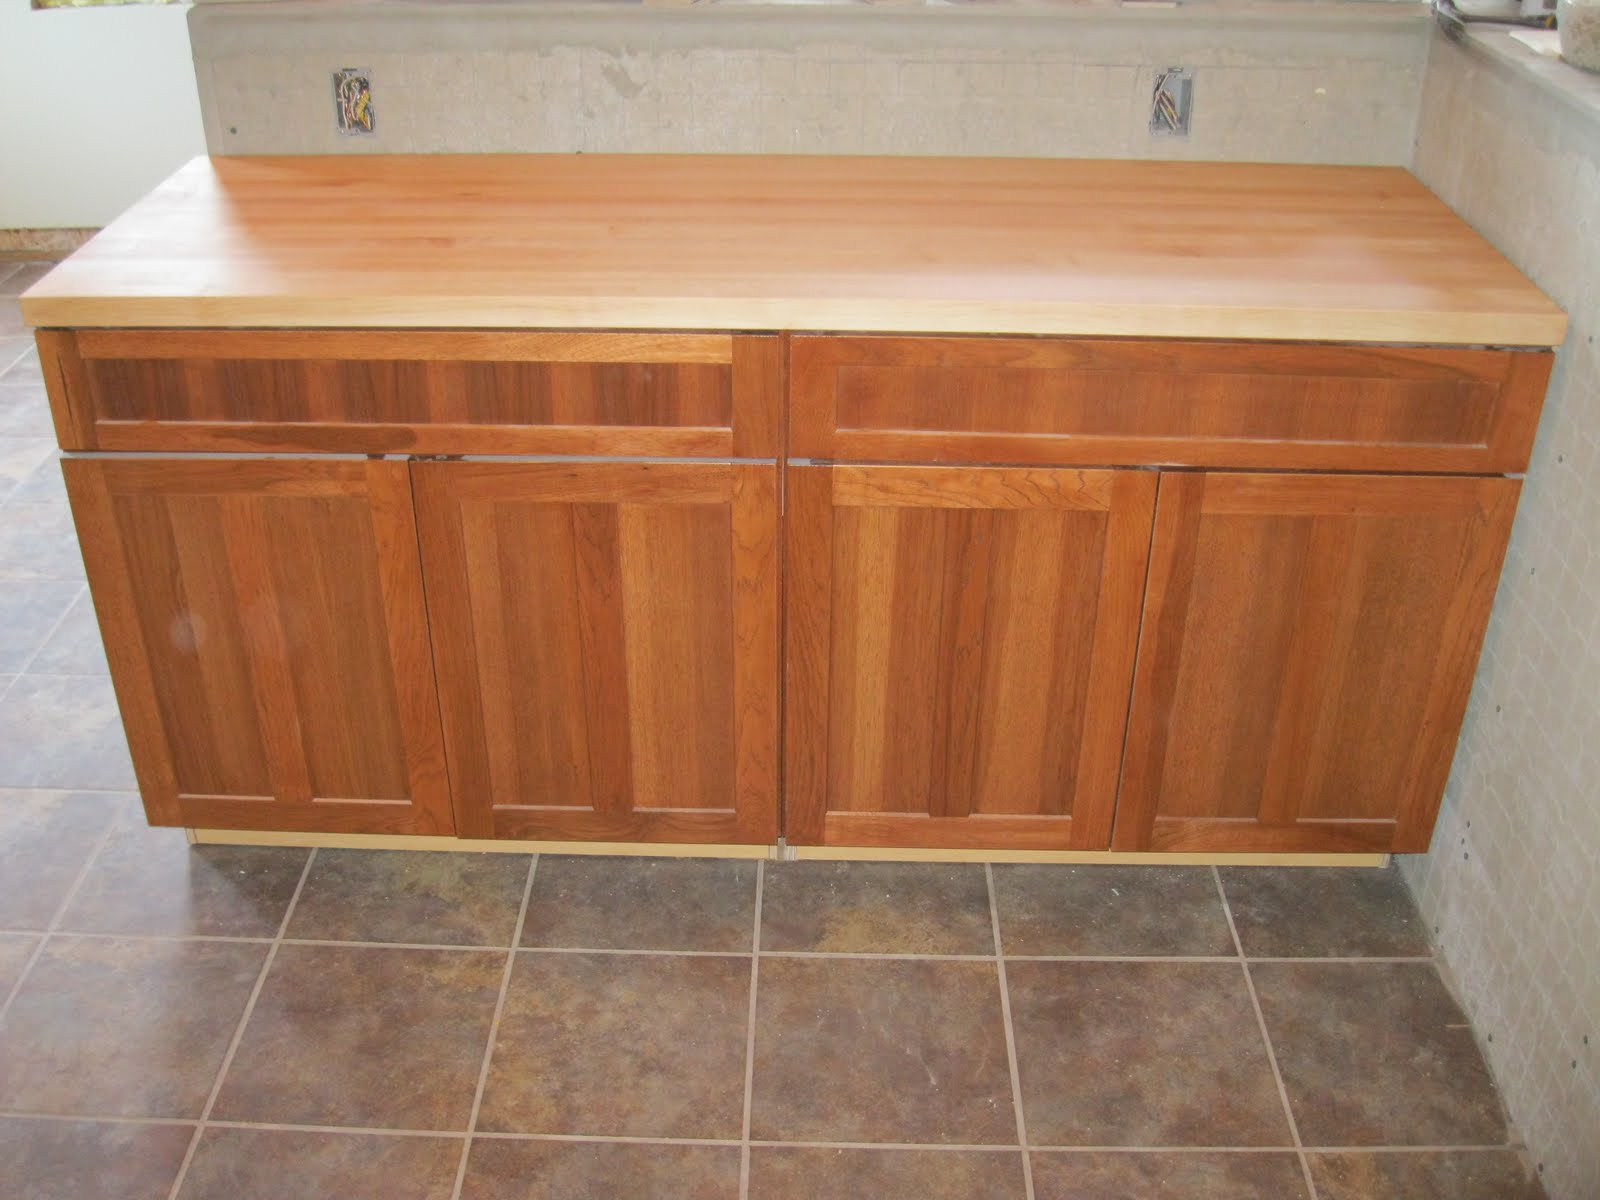 ... Tile Borders And Grouting Kitchen Base Cabinets Stonehaven ...